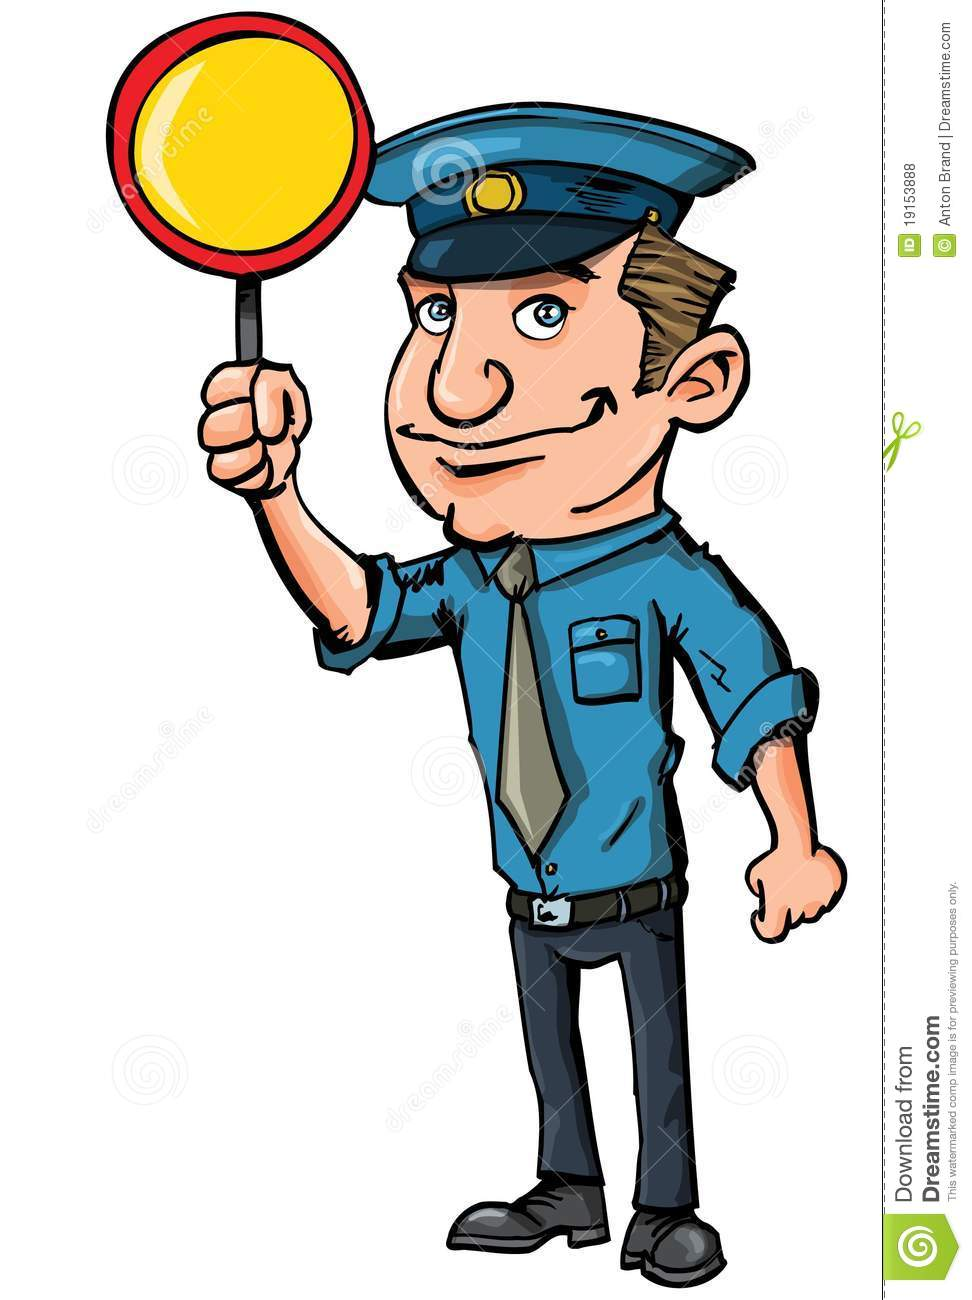 242 Security Guard free clipart.